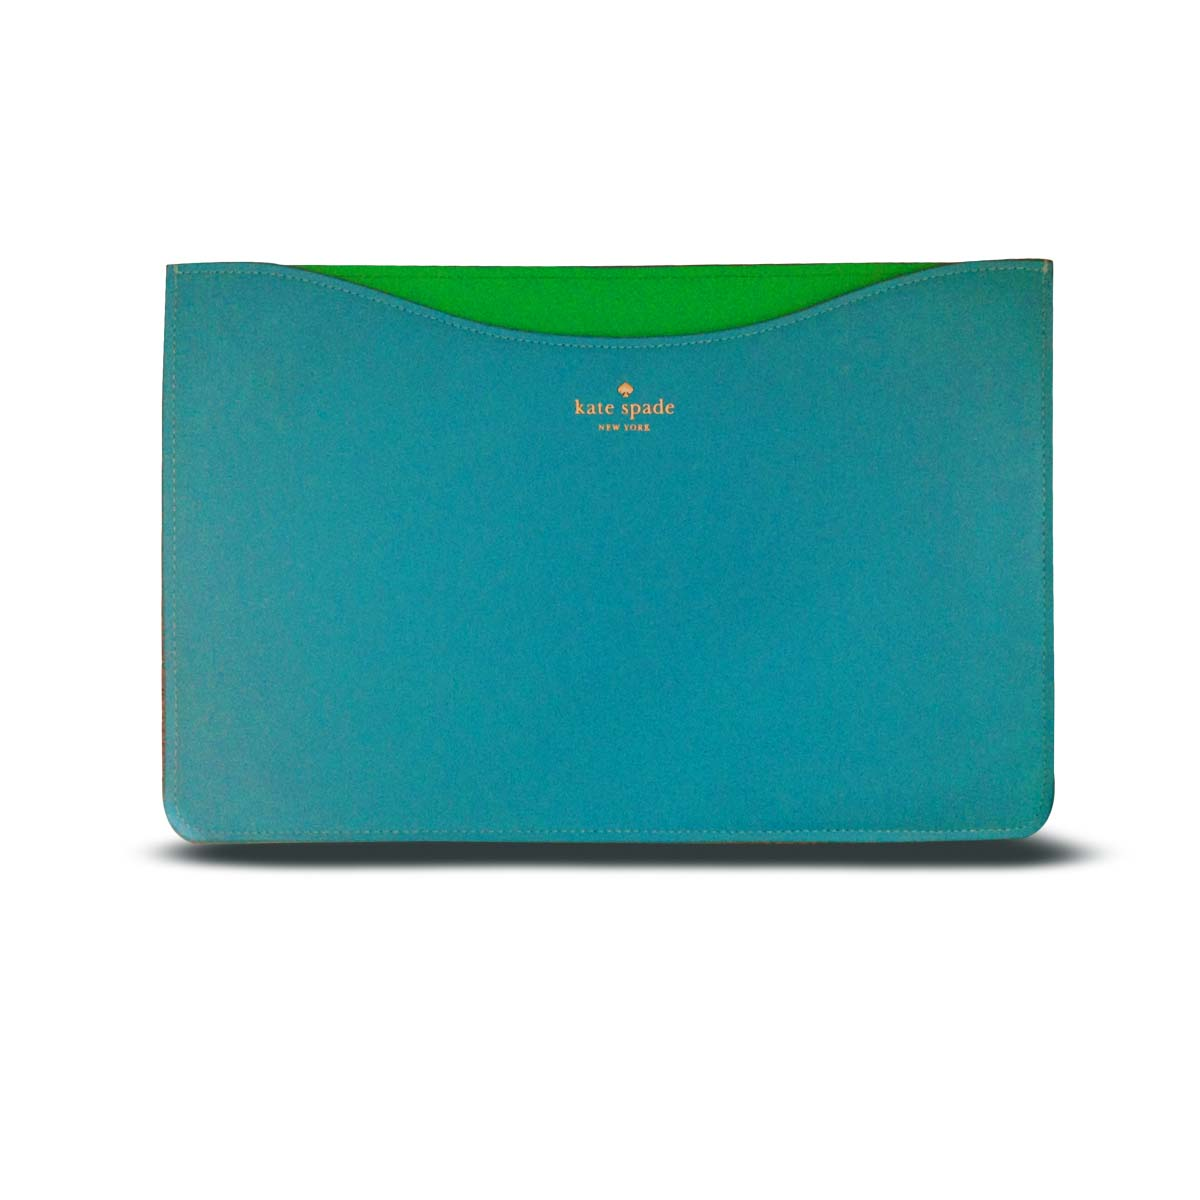 huge discount 3b0cc 3a1a8 KATE SPADE MacBook Air 11 Turquoise Laptop Sleeve